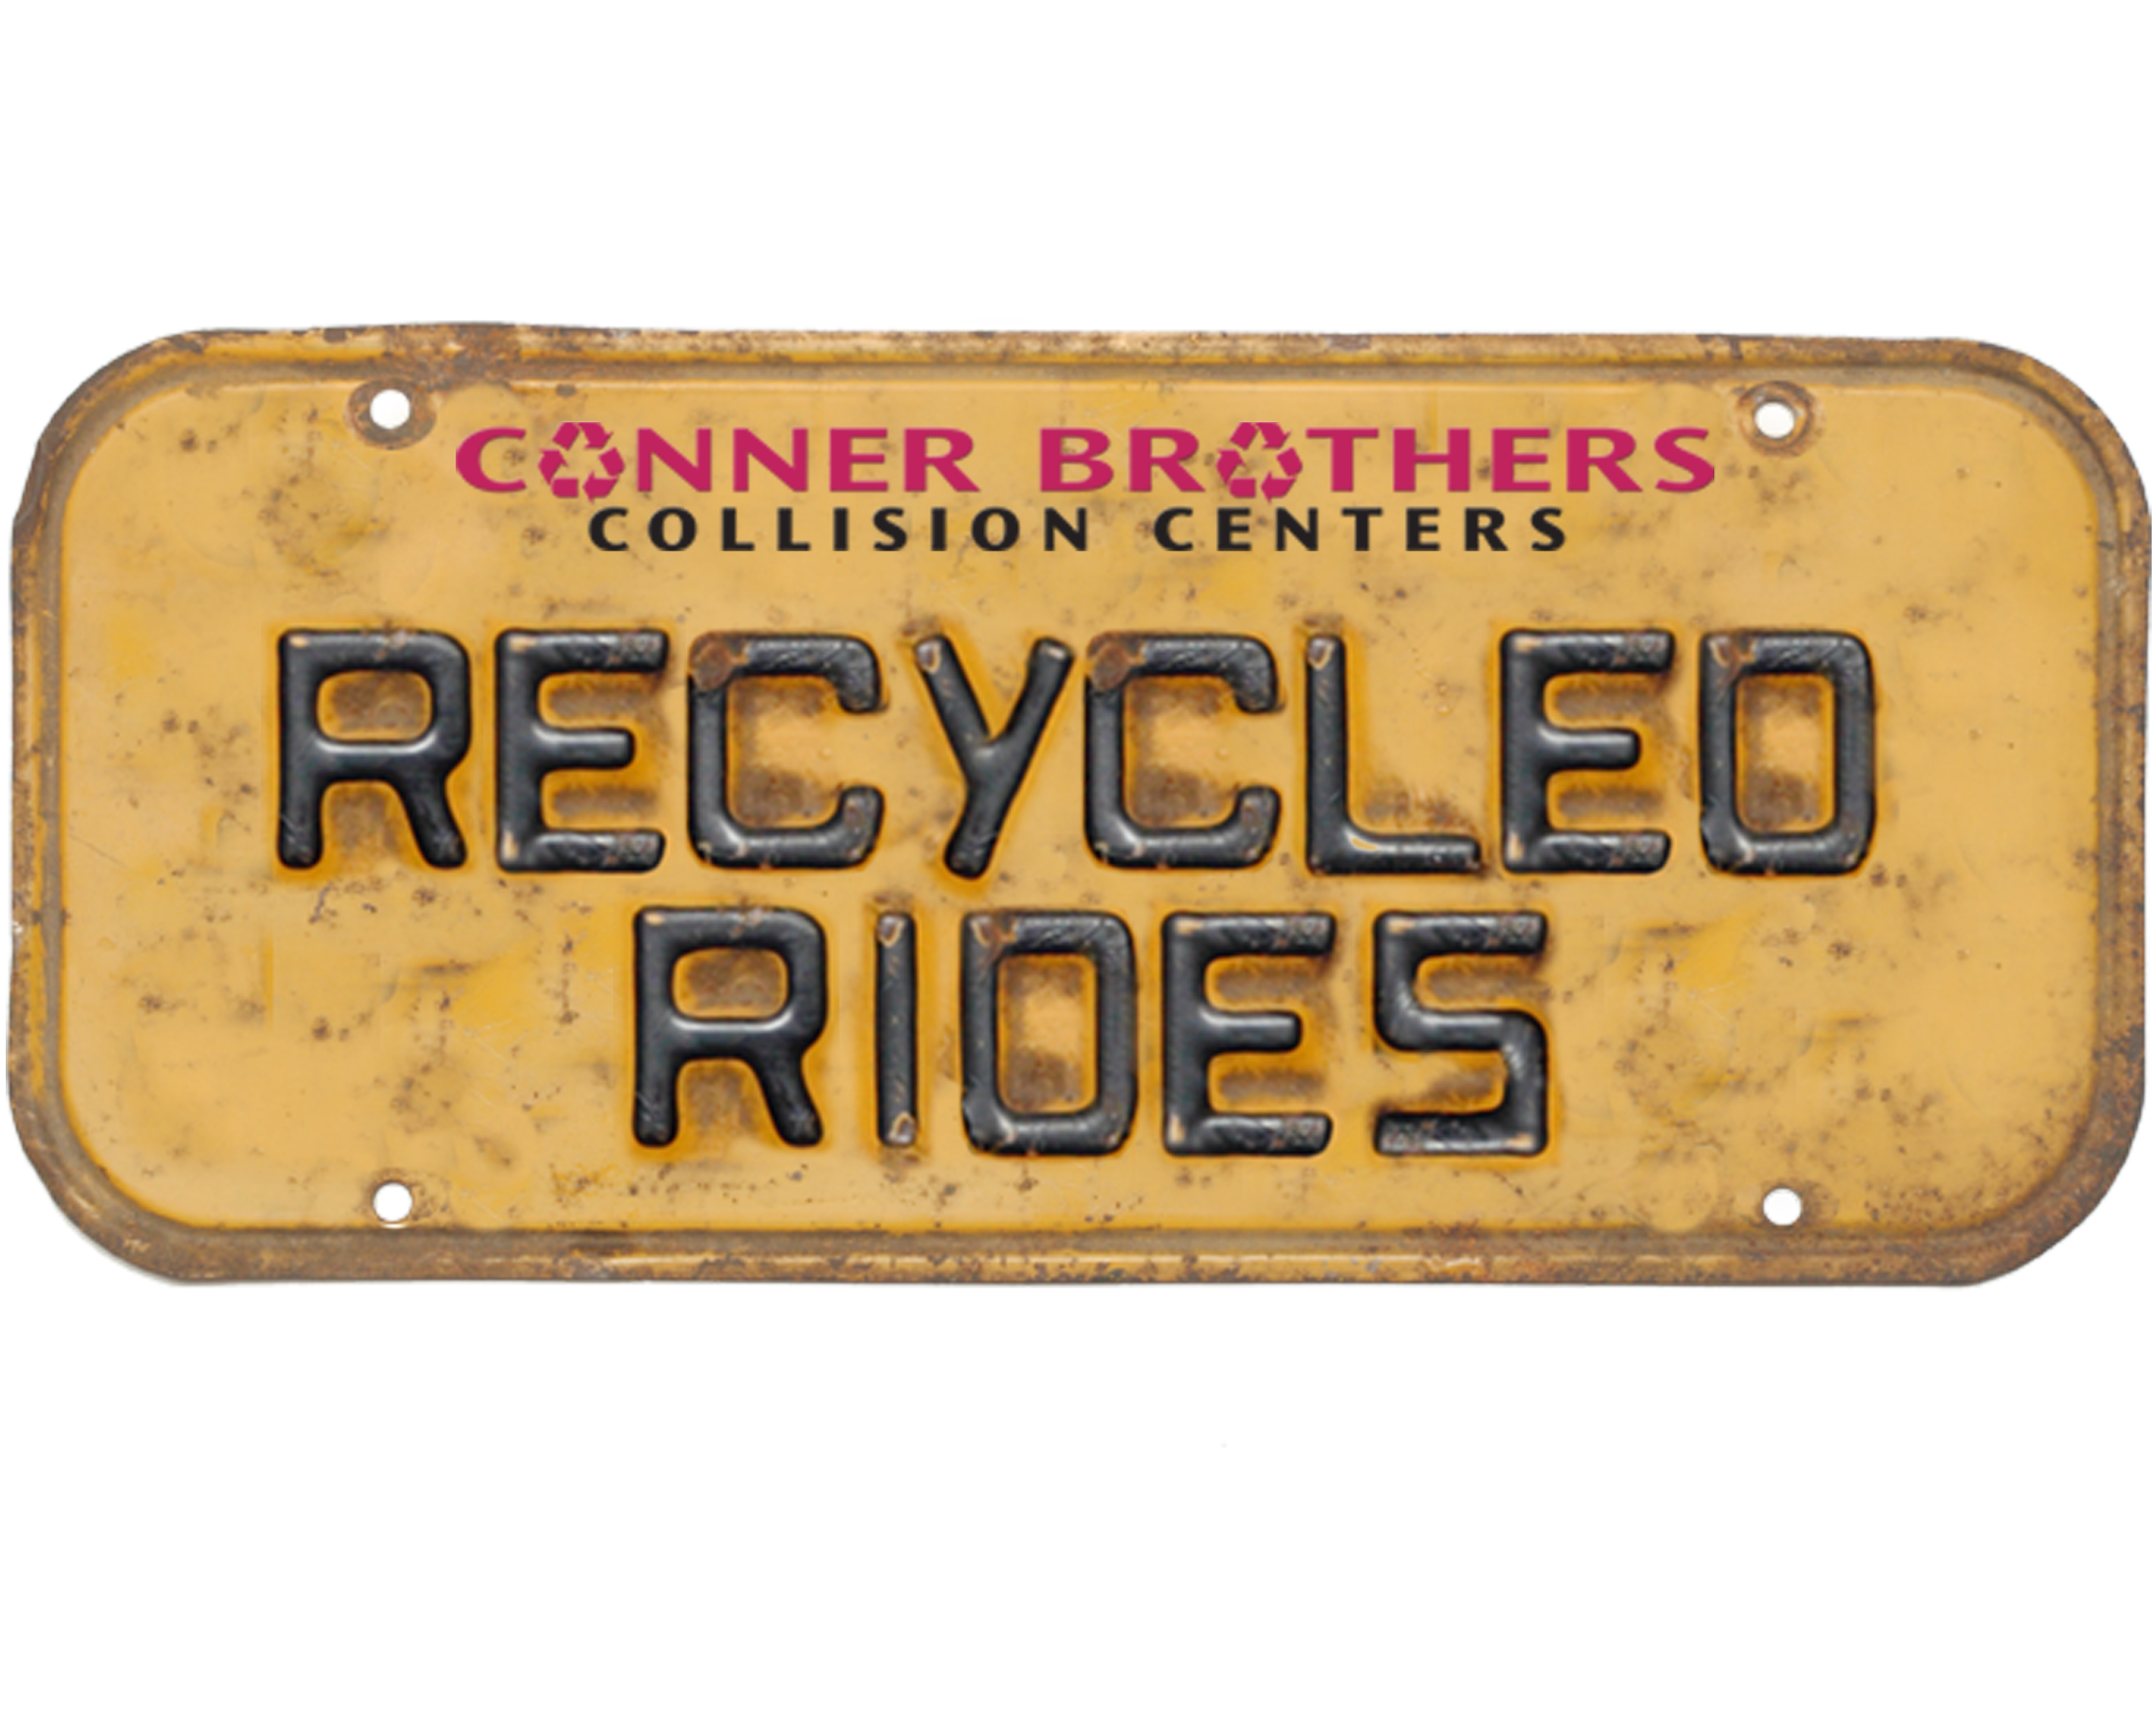 Conner Brothers Body Shop, Inc